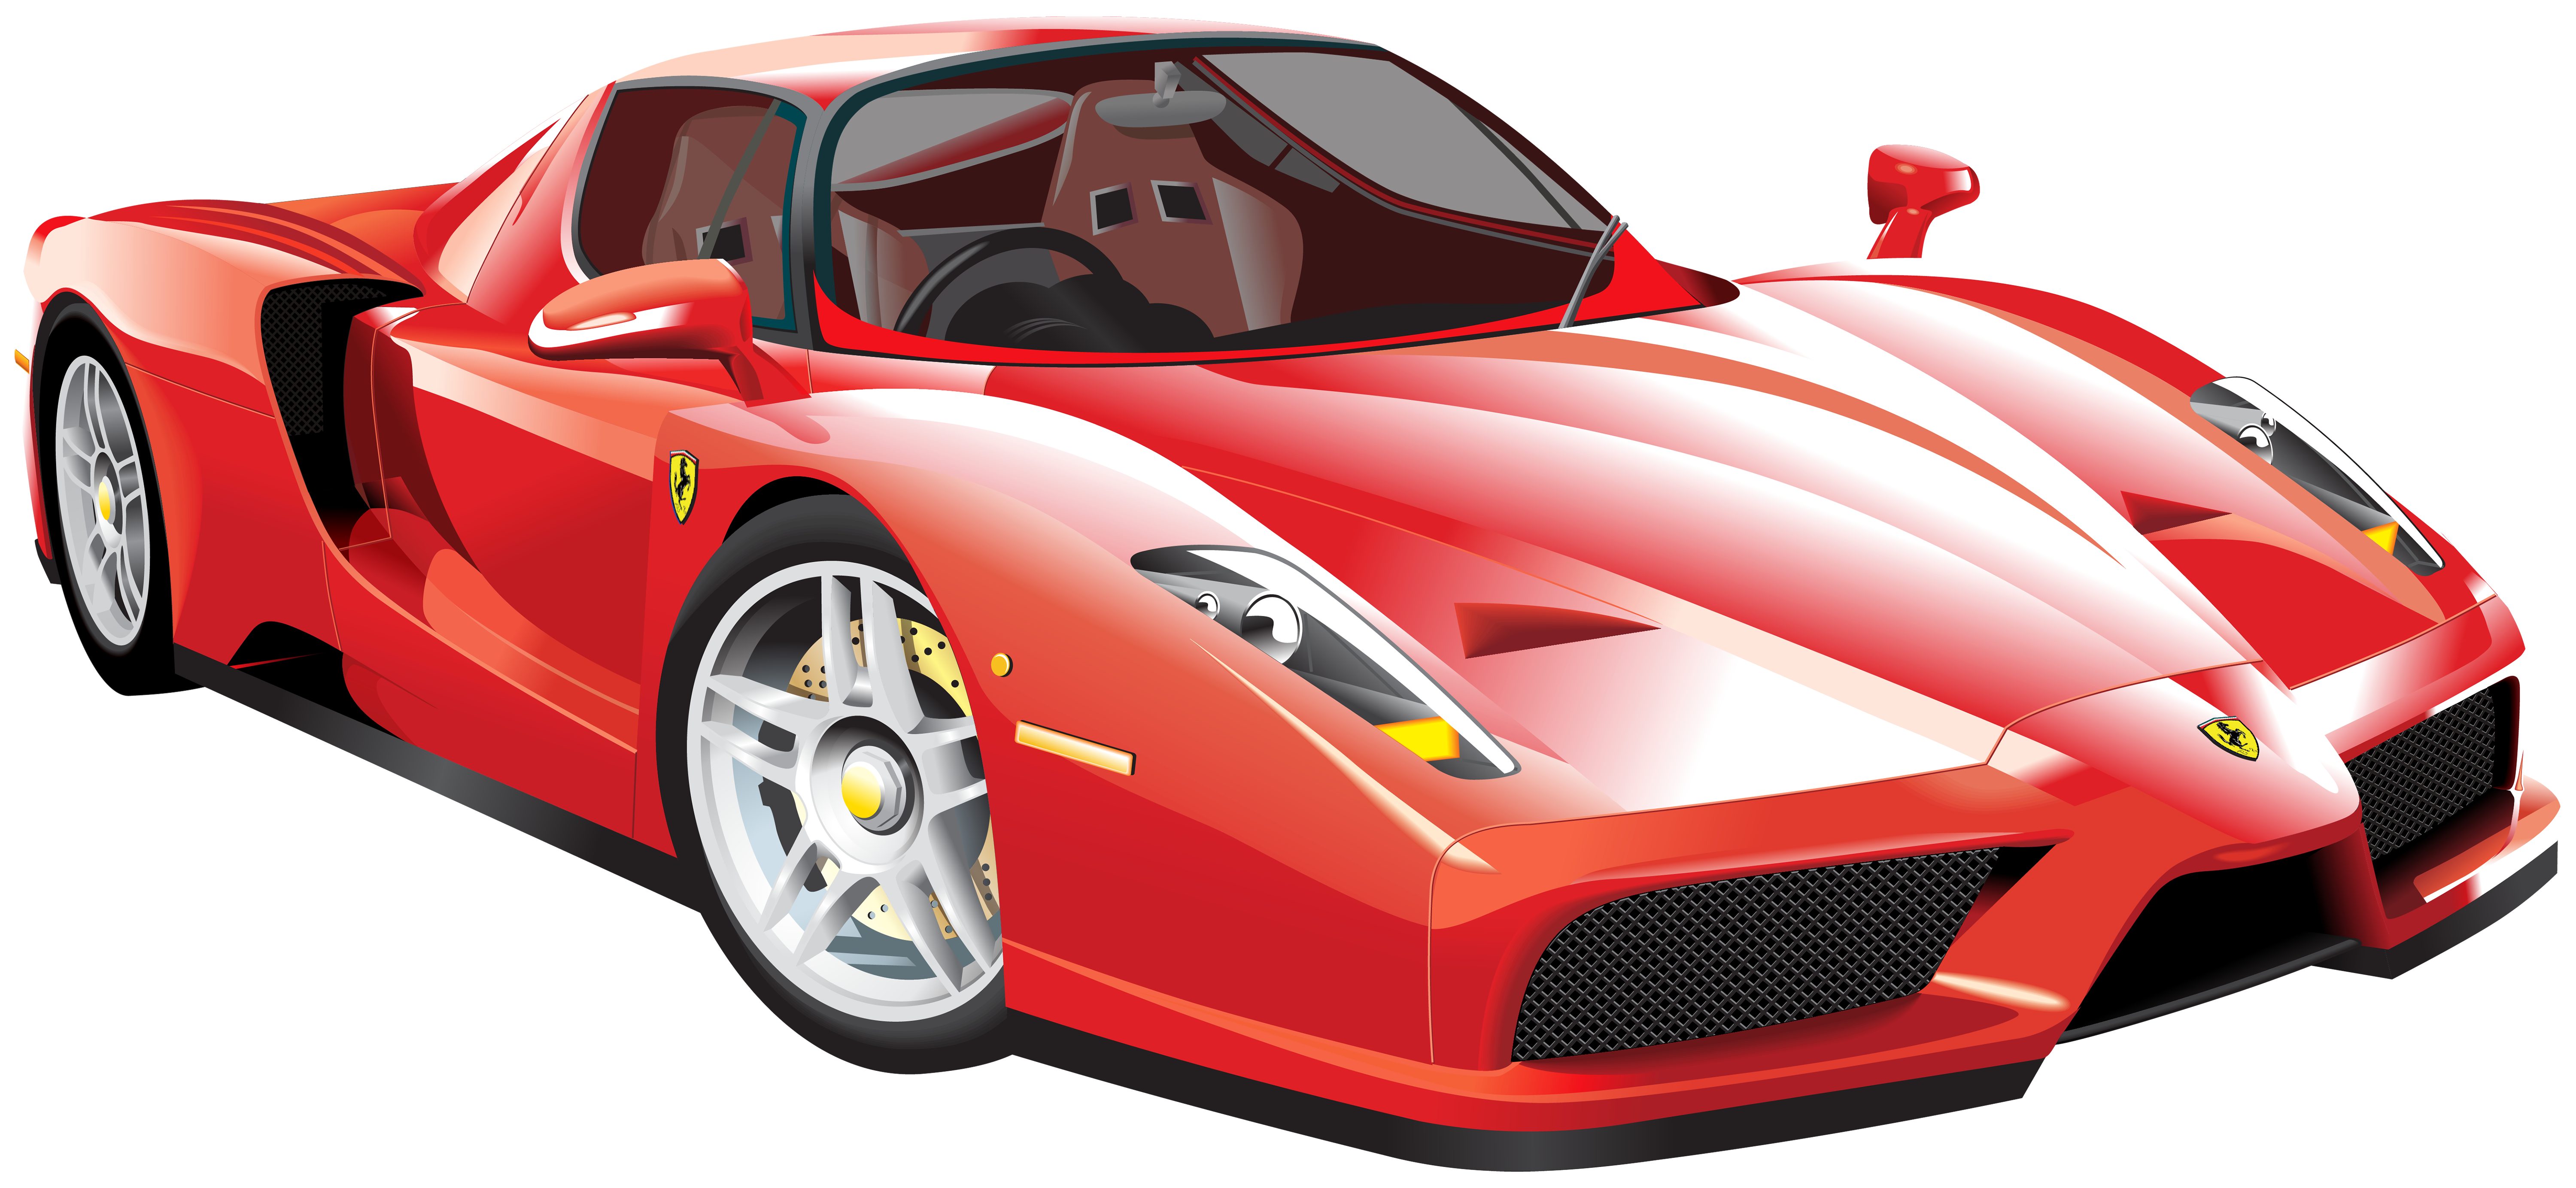 Car png clipart clip freeuse stock Red Ferrari Car PNG Clip Art - Best WEB Clipart clip freeuse stock